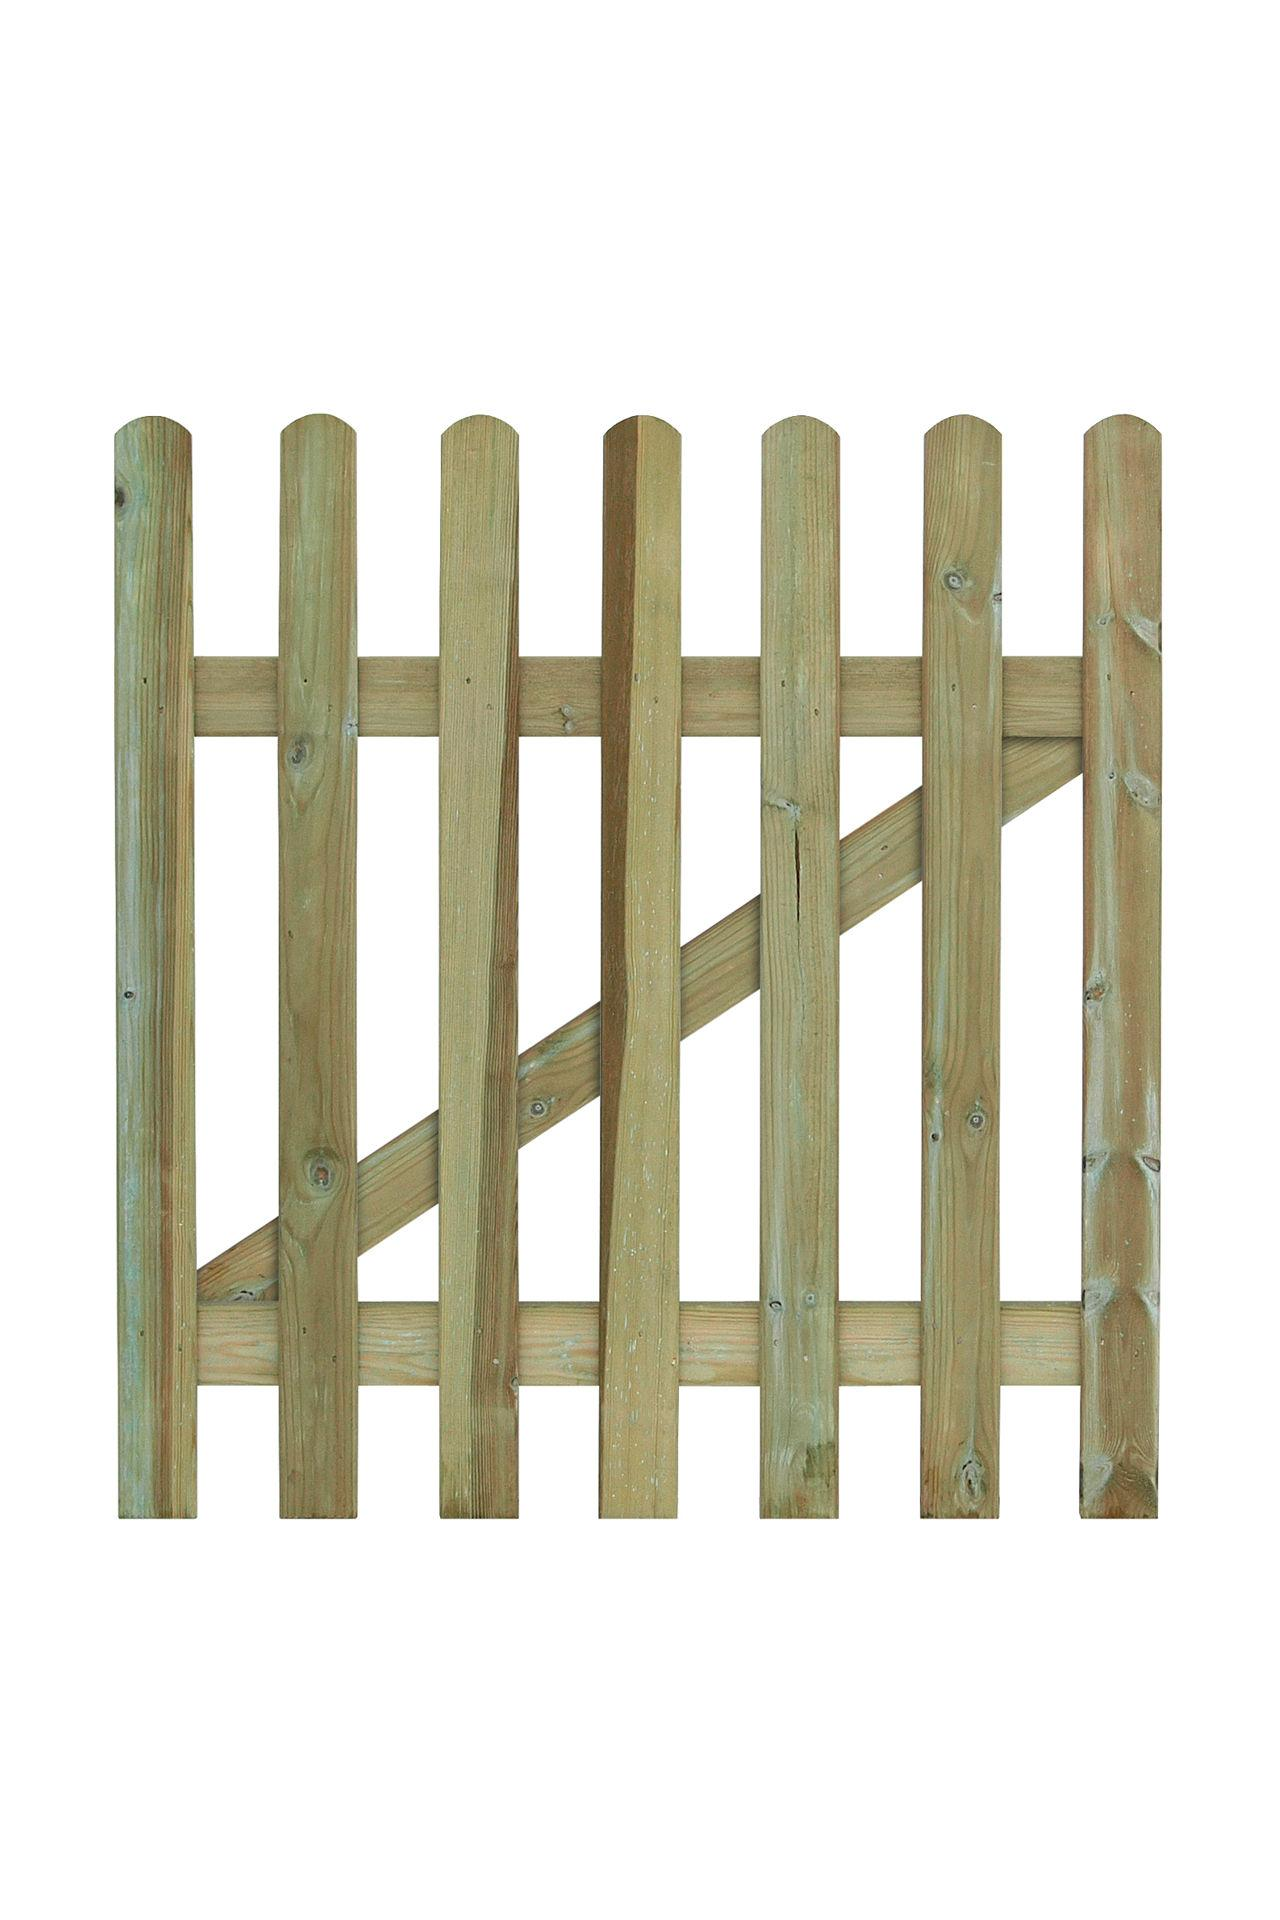 Pallisade Wood Gate with Rounded Pickets